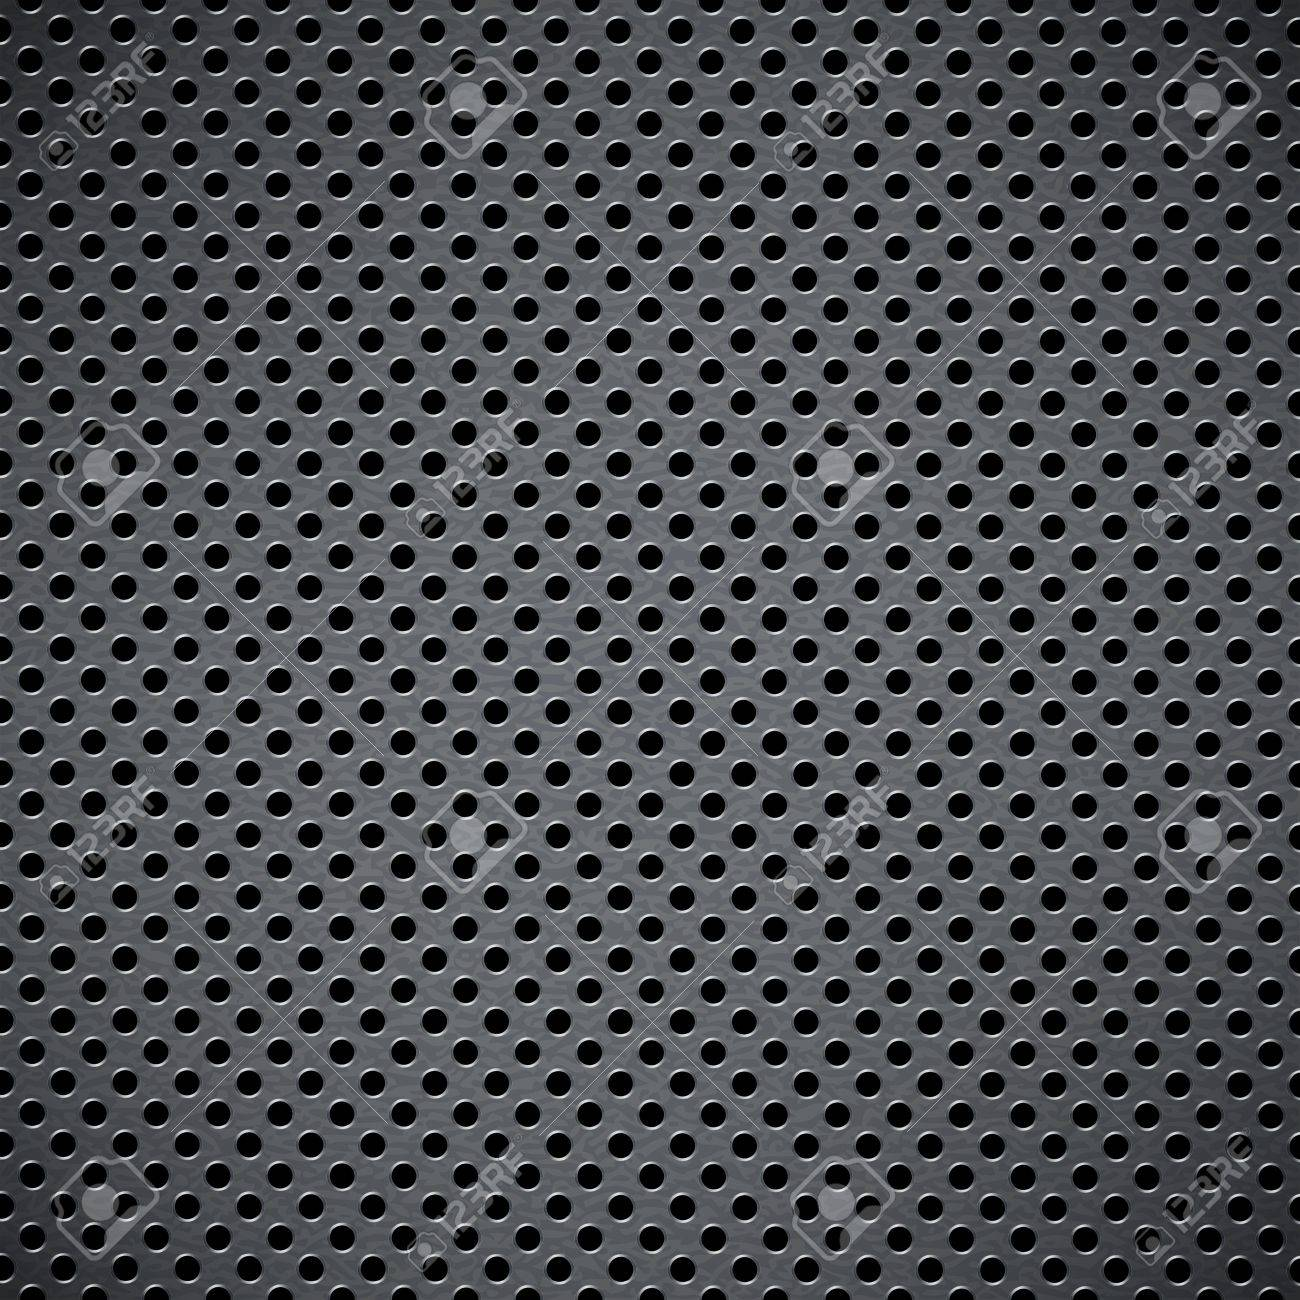 Metal background with circular grid. Raster version Stock Vector - 15253467